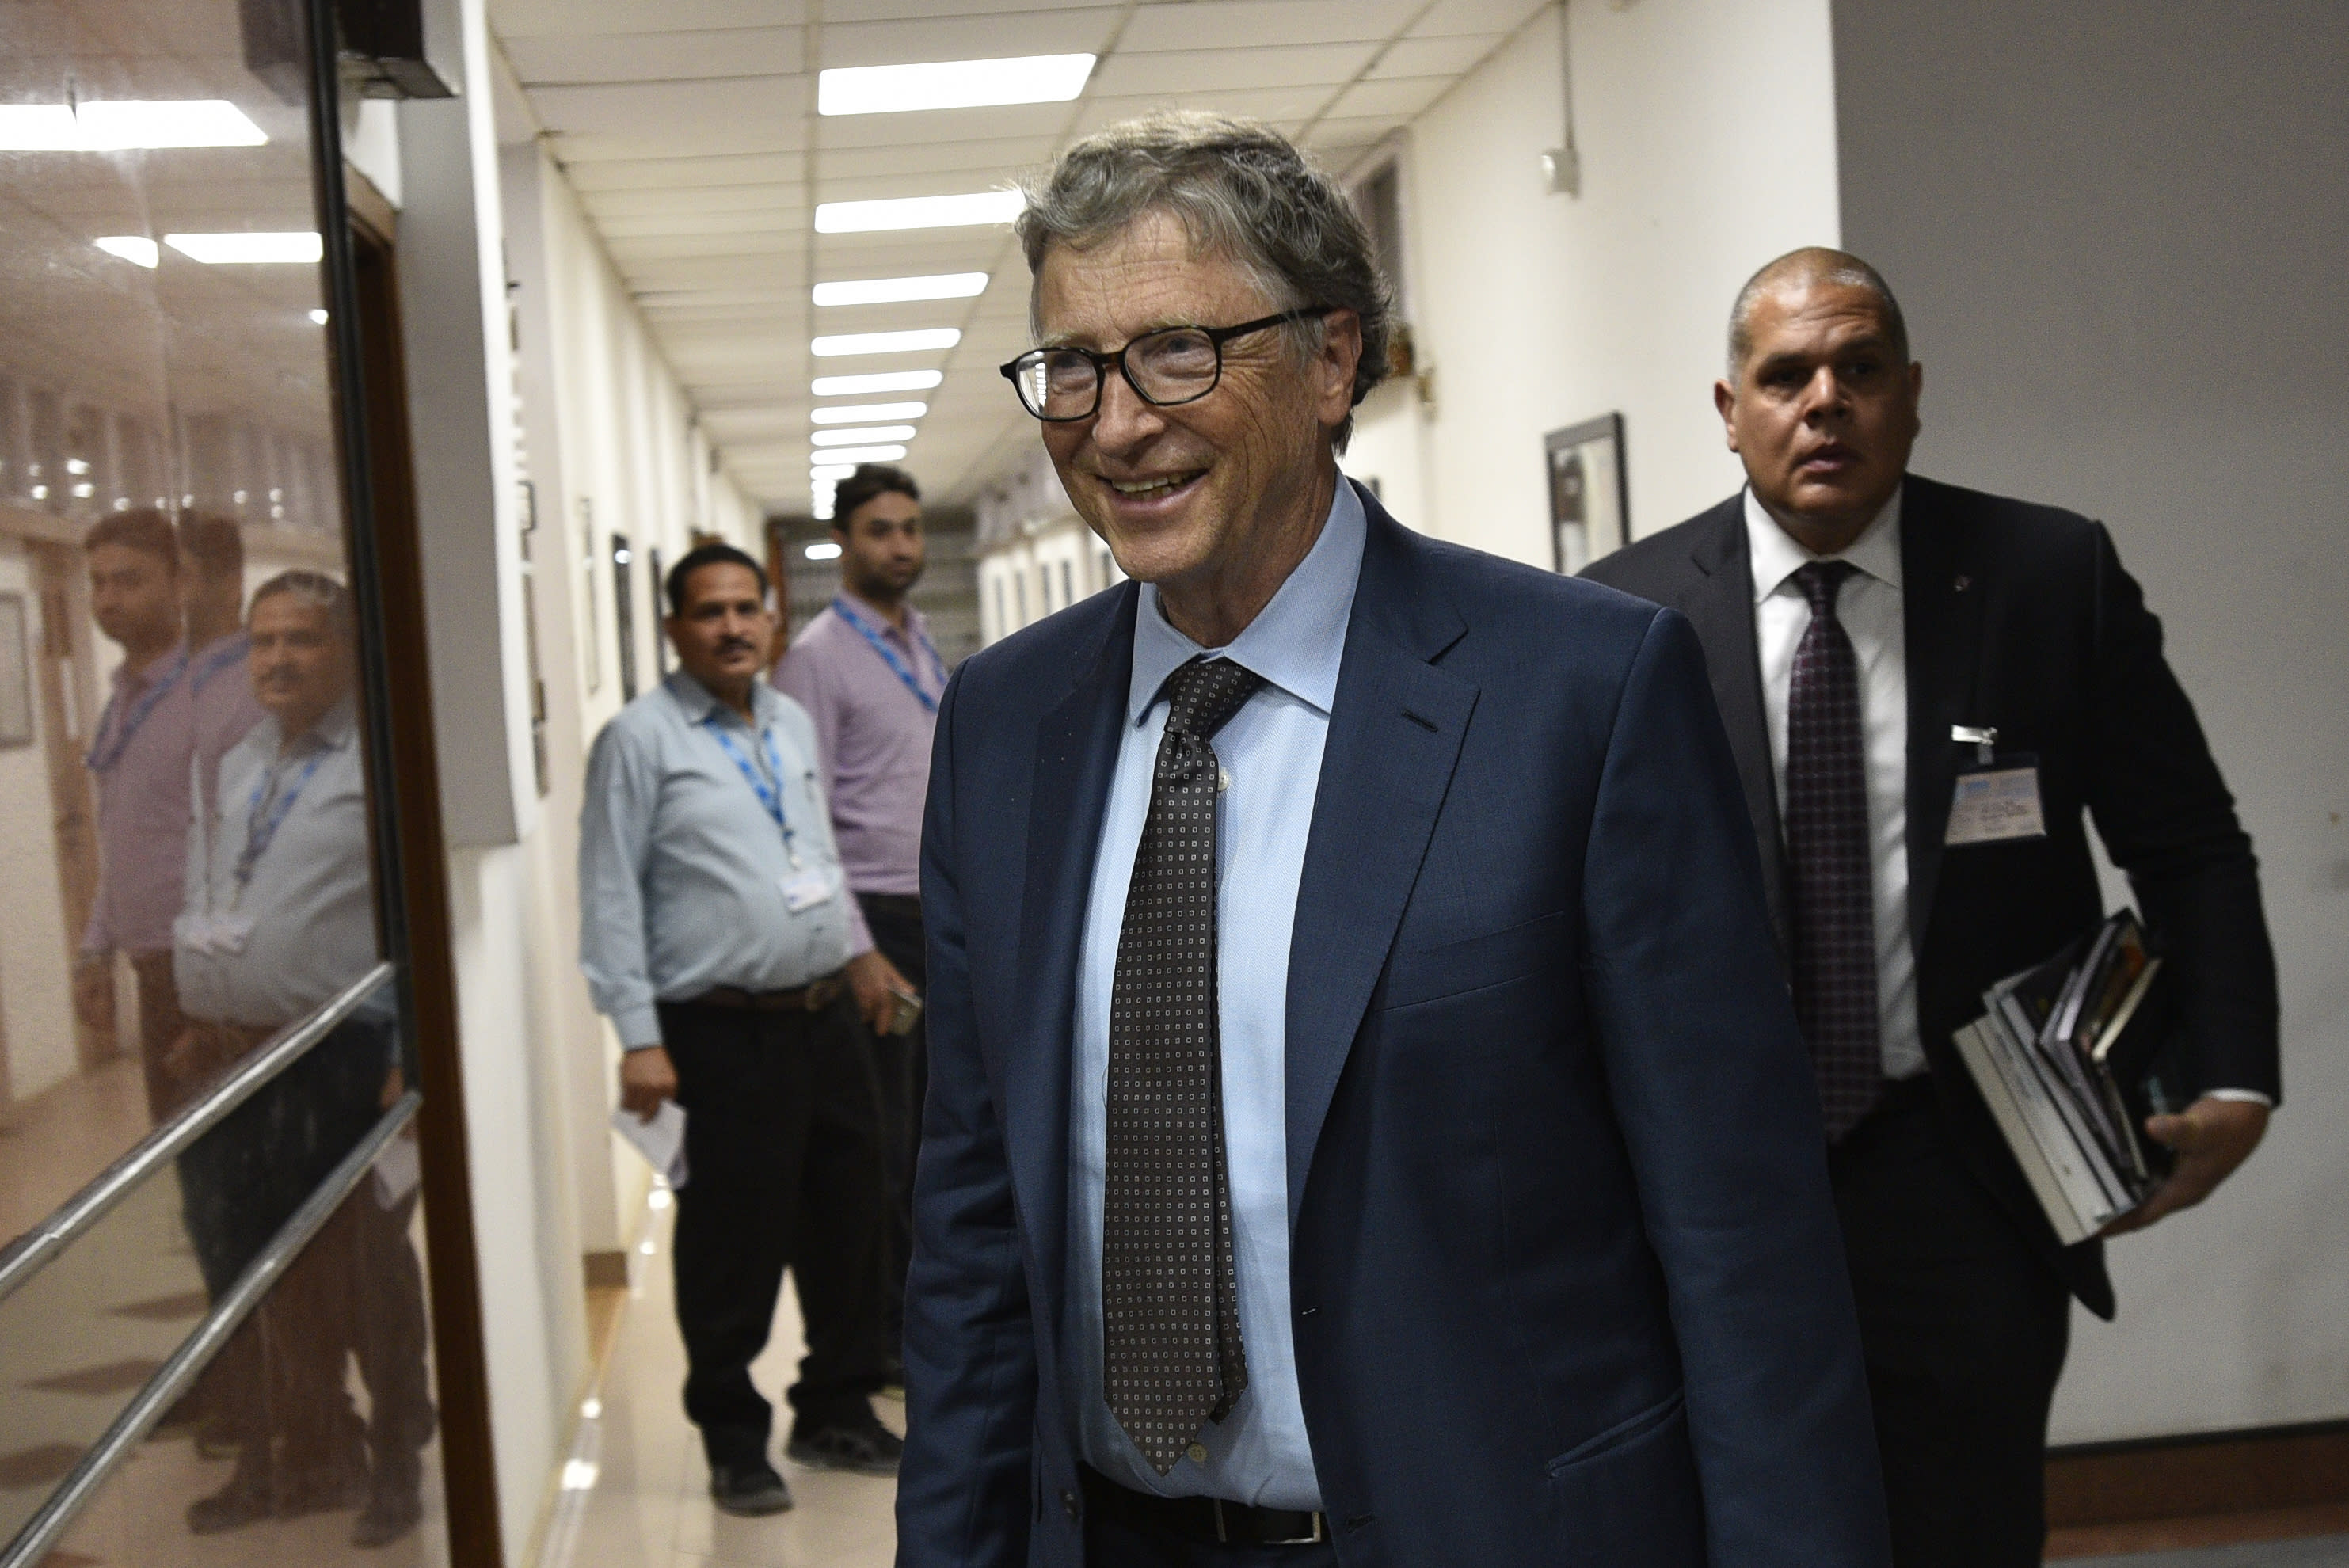 Bill Gates has been vocal throughout the pandemic in calling for collaboration to beat the virus. (AP)